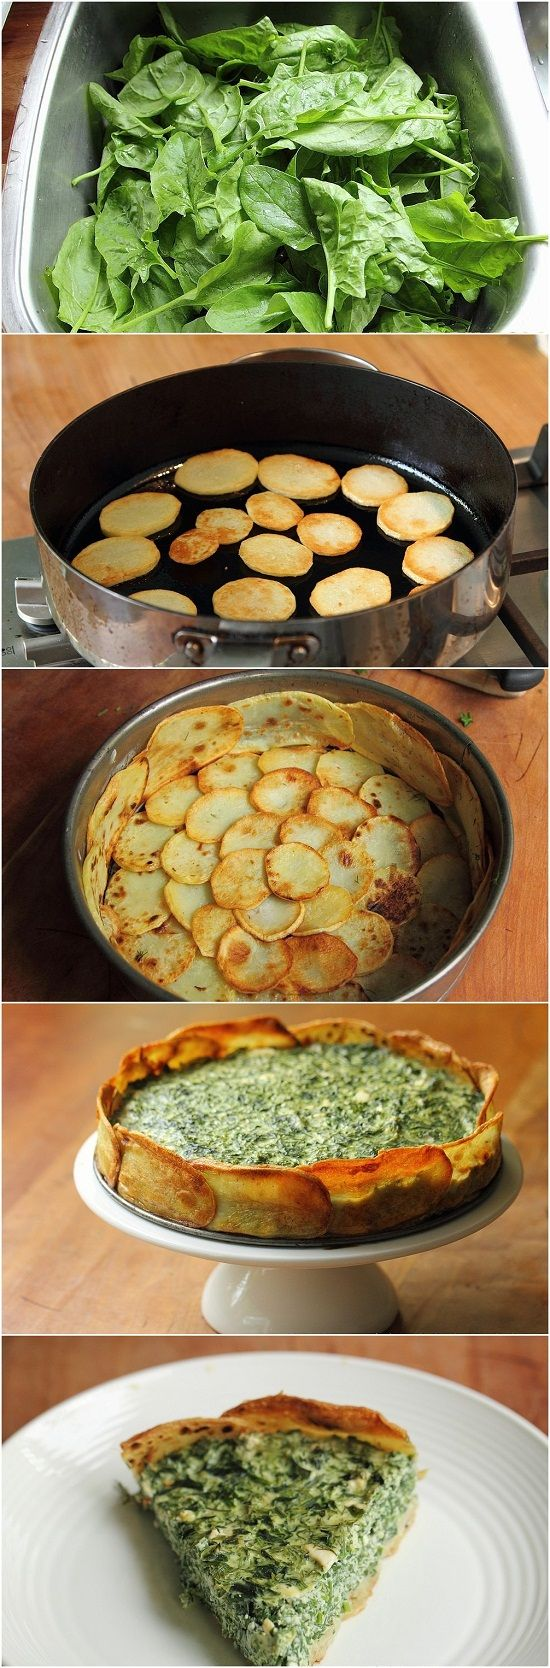 Spinach and Spring Herb Torta in Potato Crust Recipe